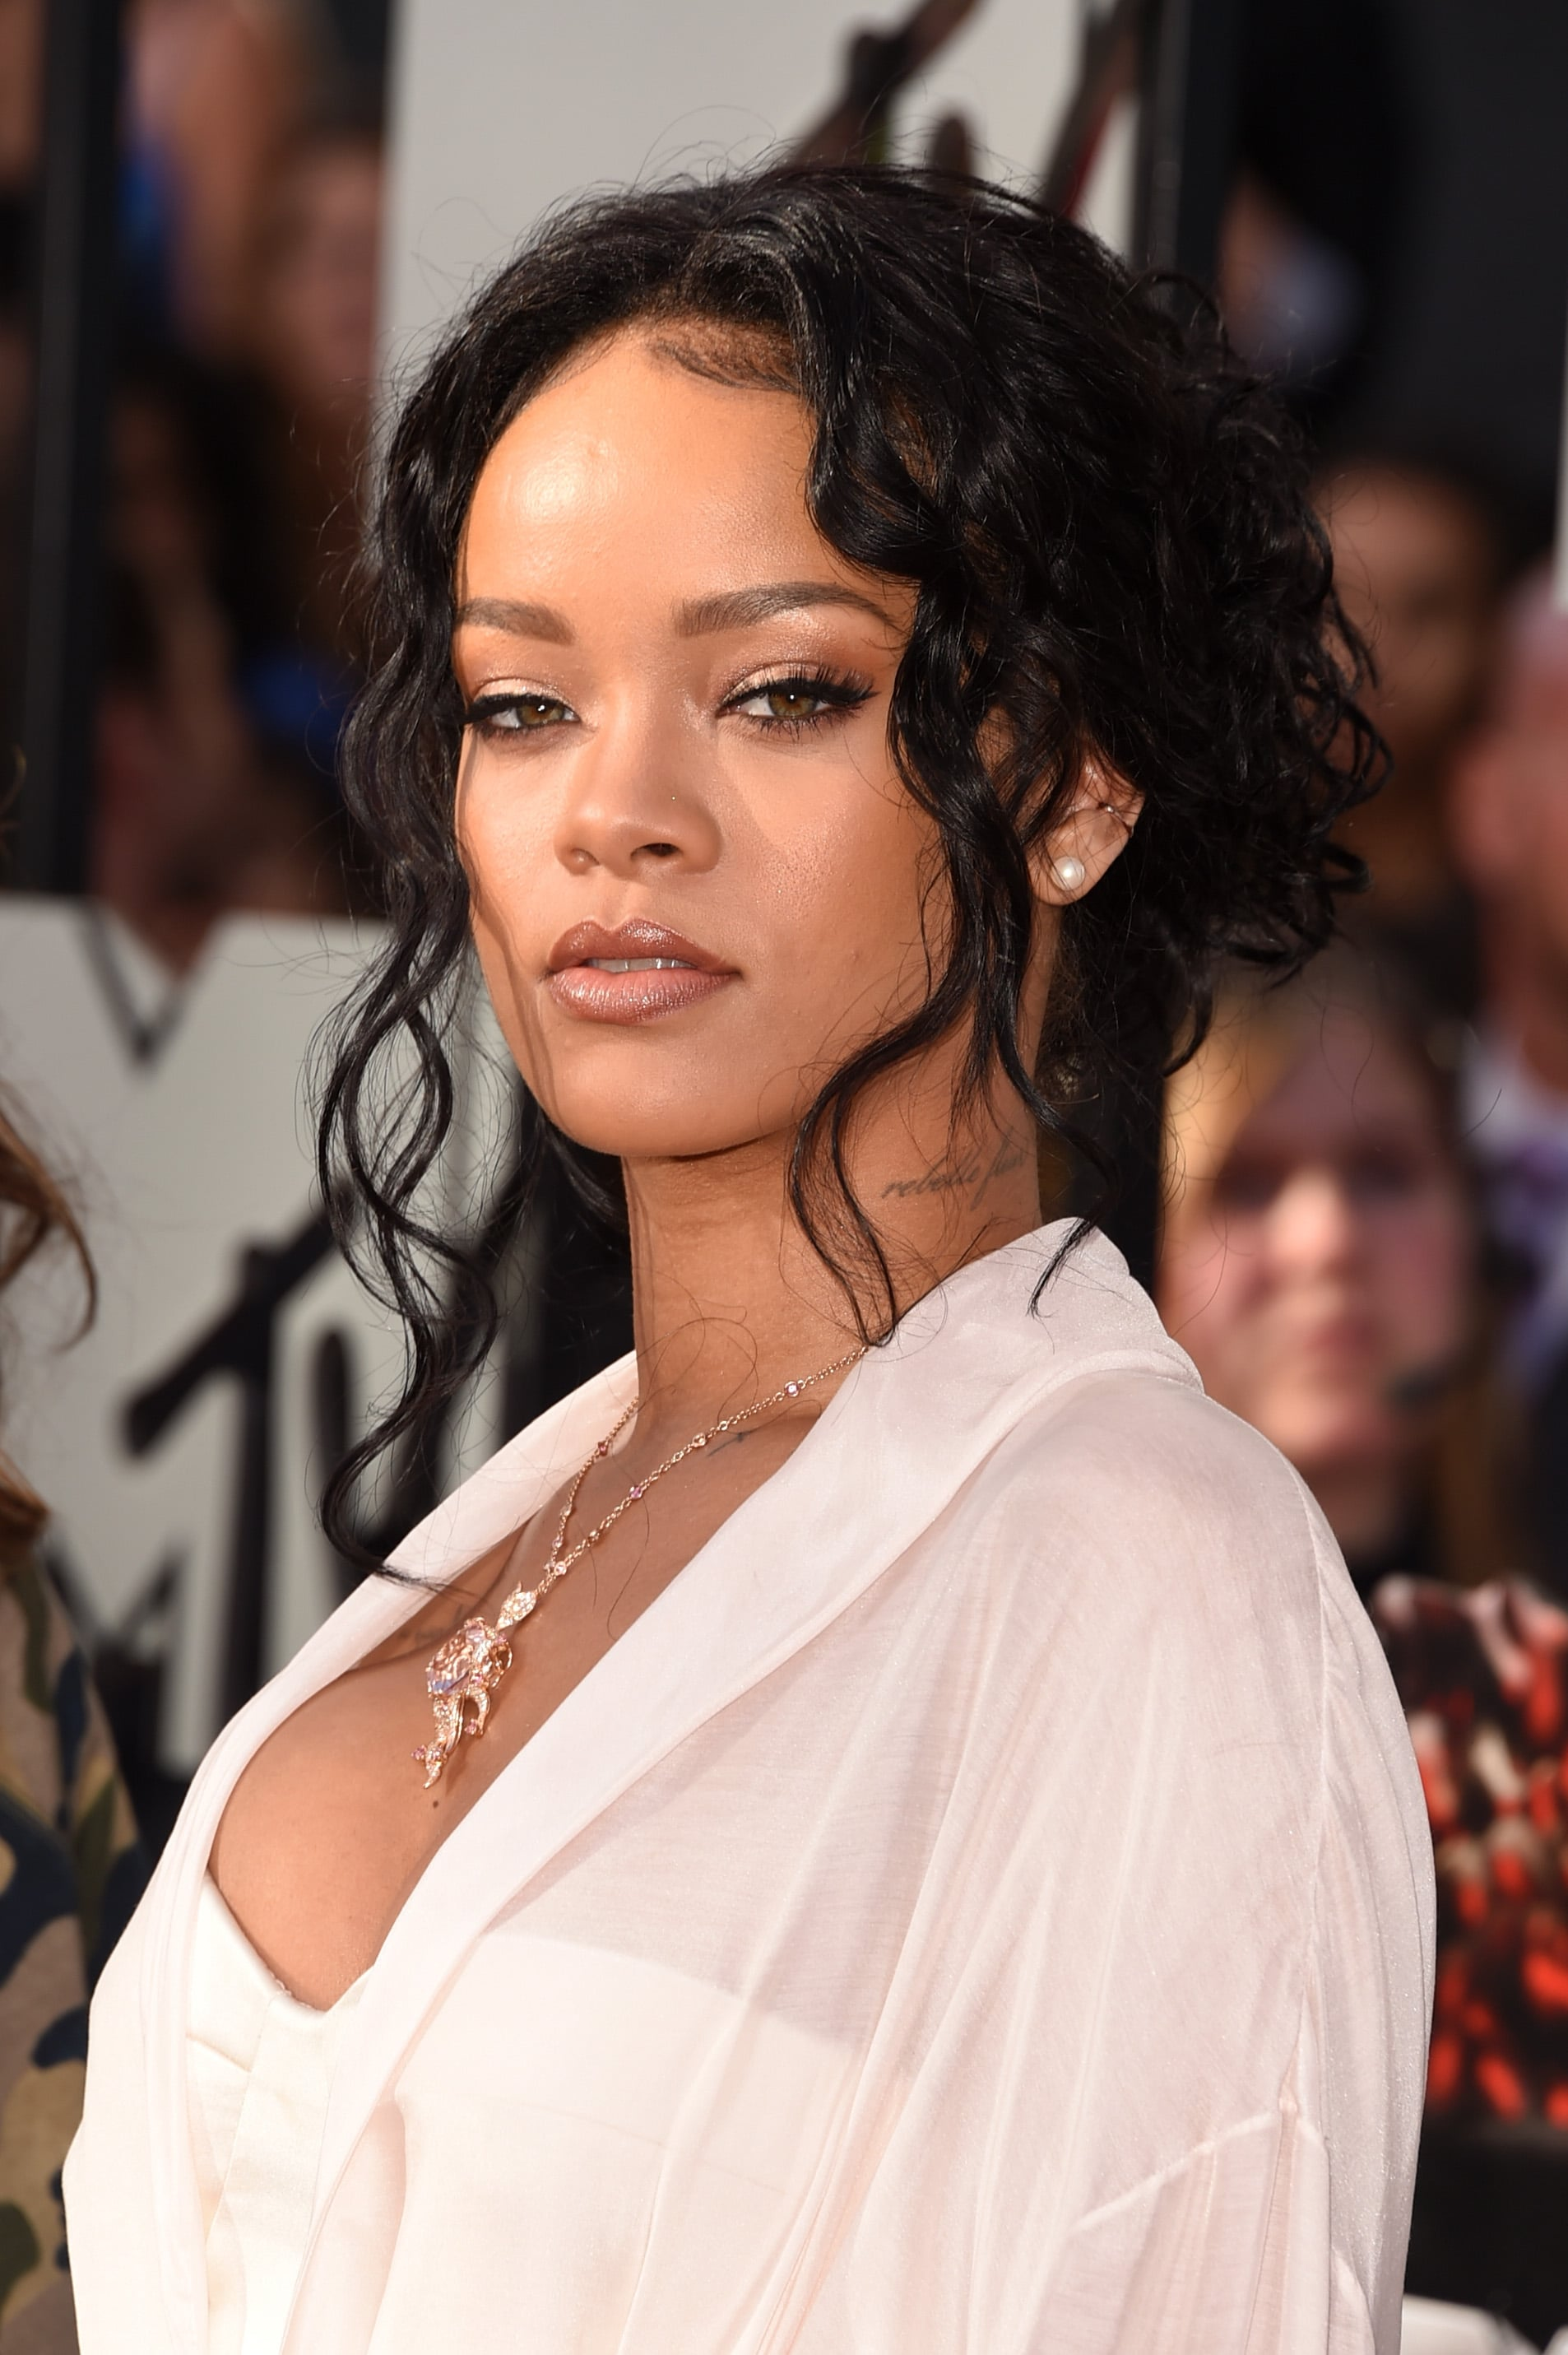 rihanna hair style rihanna s hair and makeup at mtv awards 2014 8903